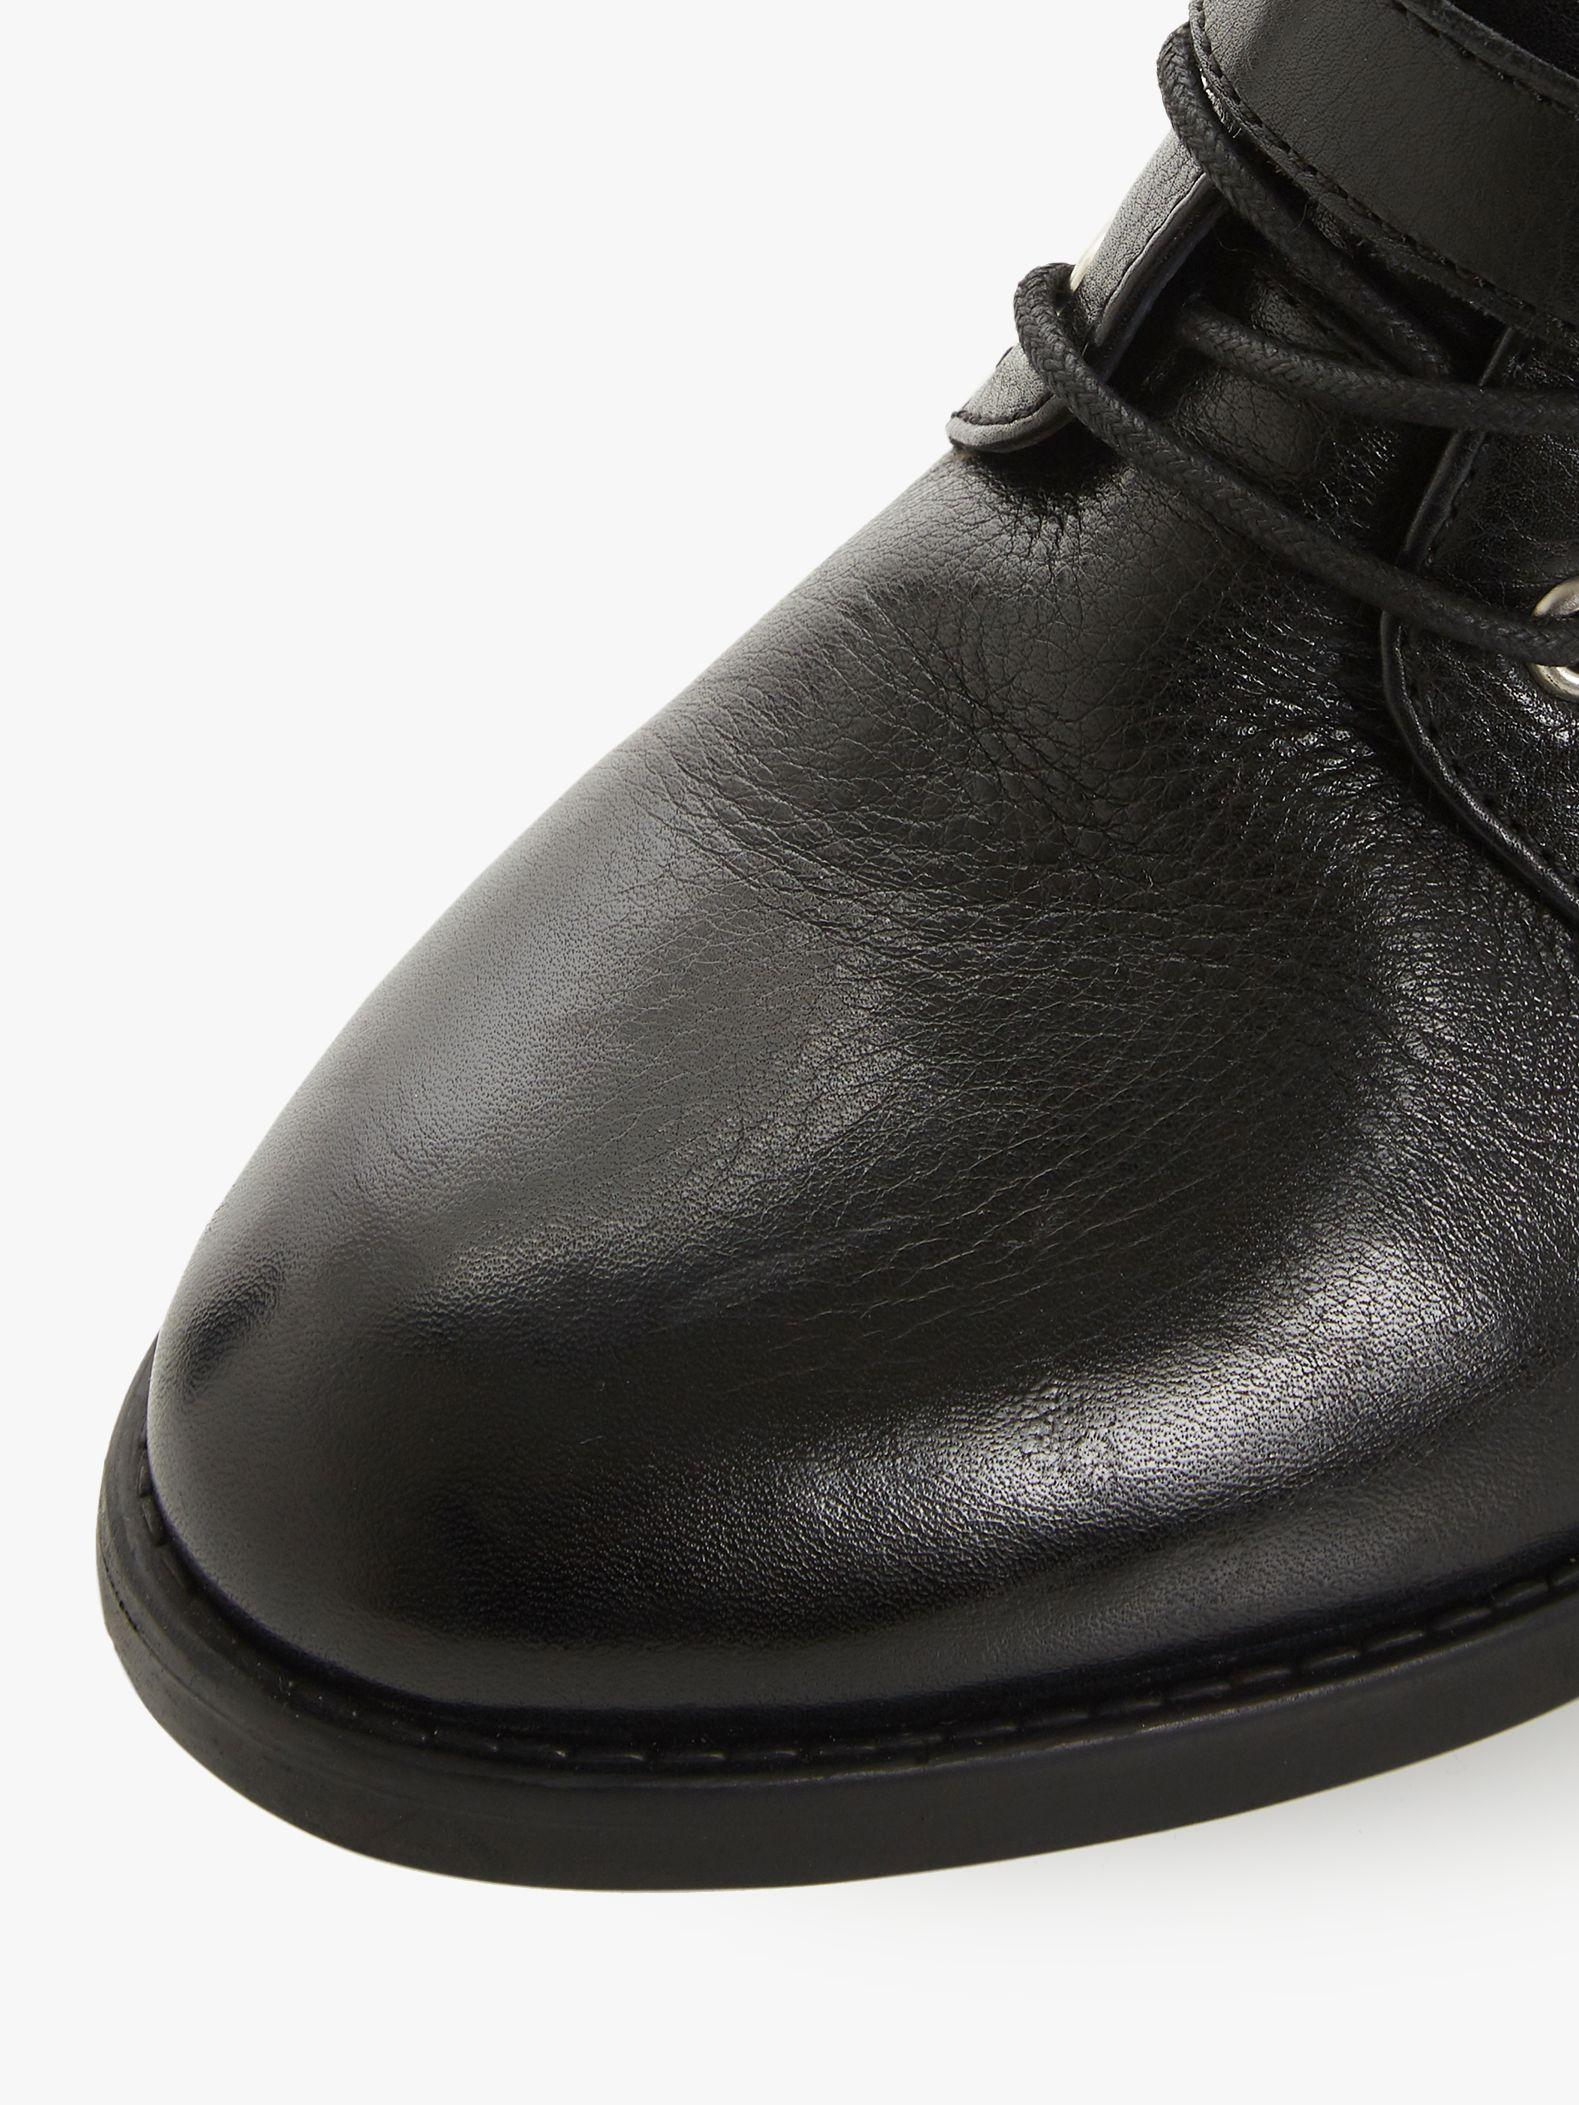 Dune Lace Paxtone Buckled Leather Boots